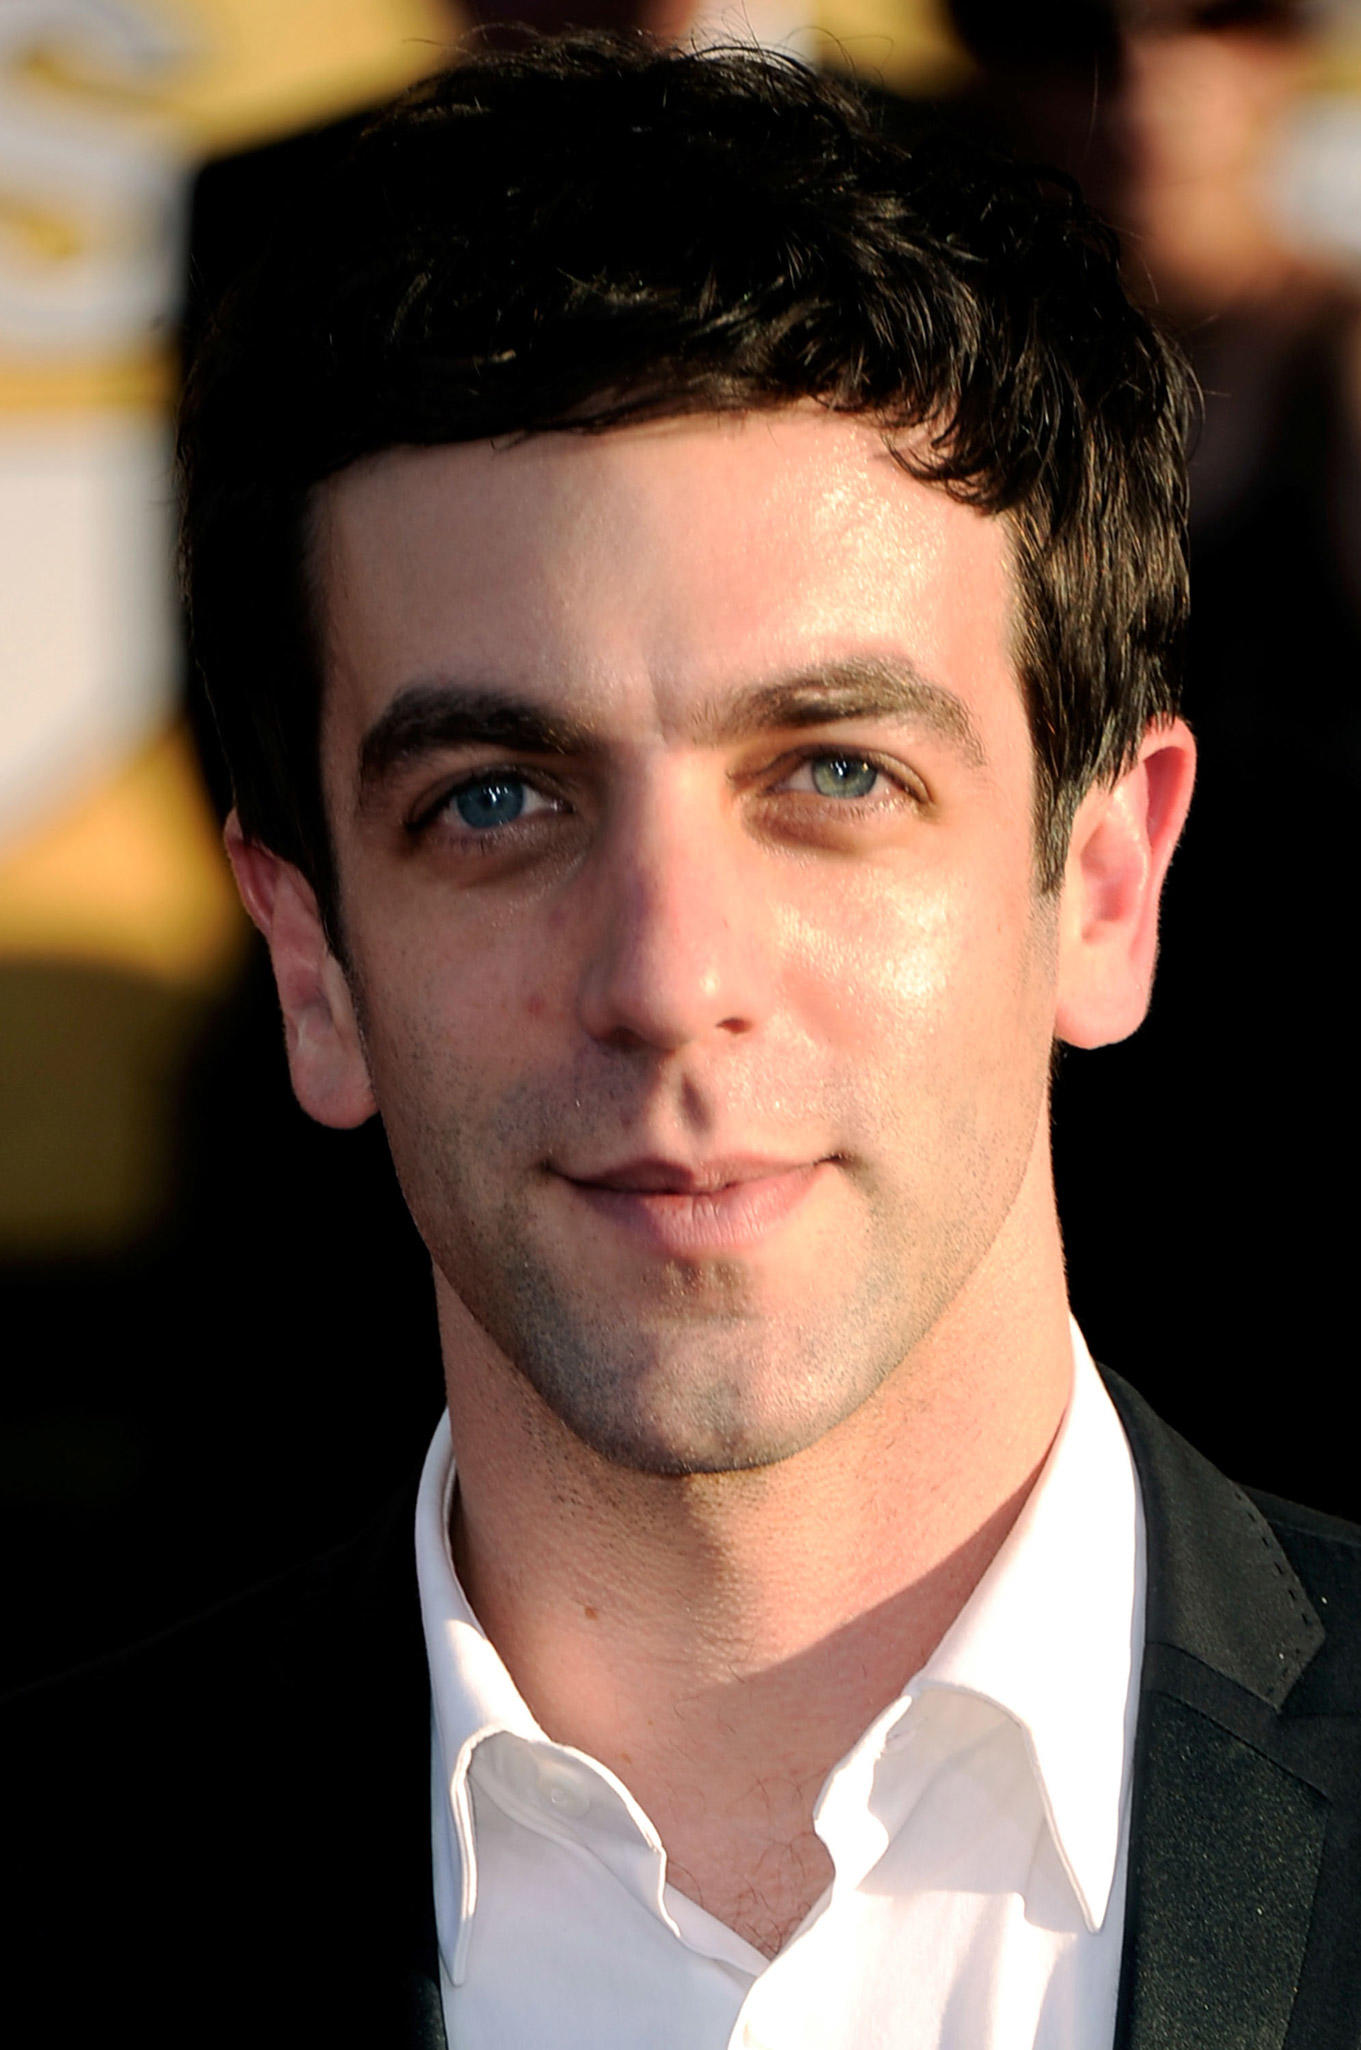 B.J. Novak at the 18th Annual Screen Actors Guild Awards at the Shrine Auditorium in Los Angeles, CA.